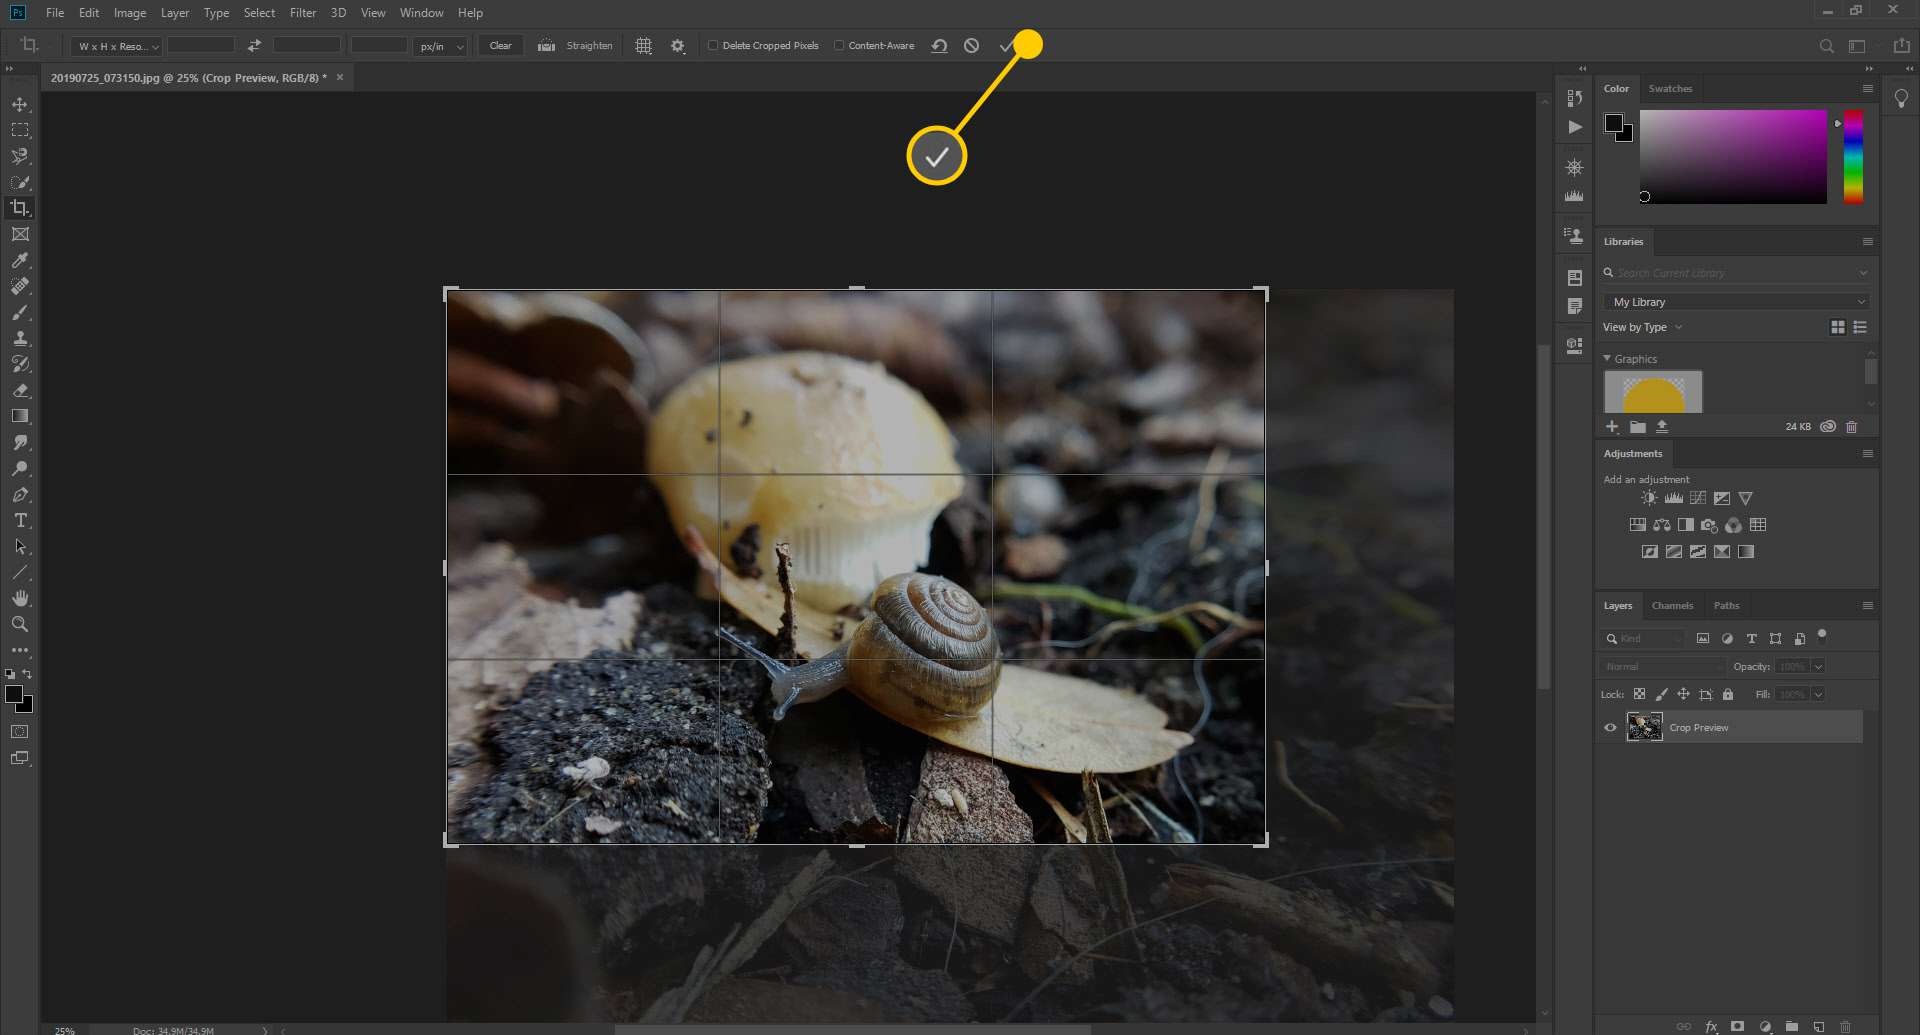 A screenshot showing how to accept a crop in Photoshop.